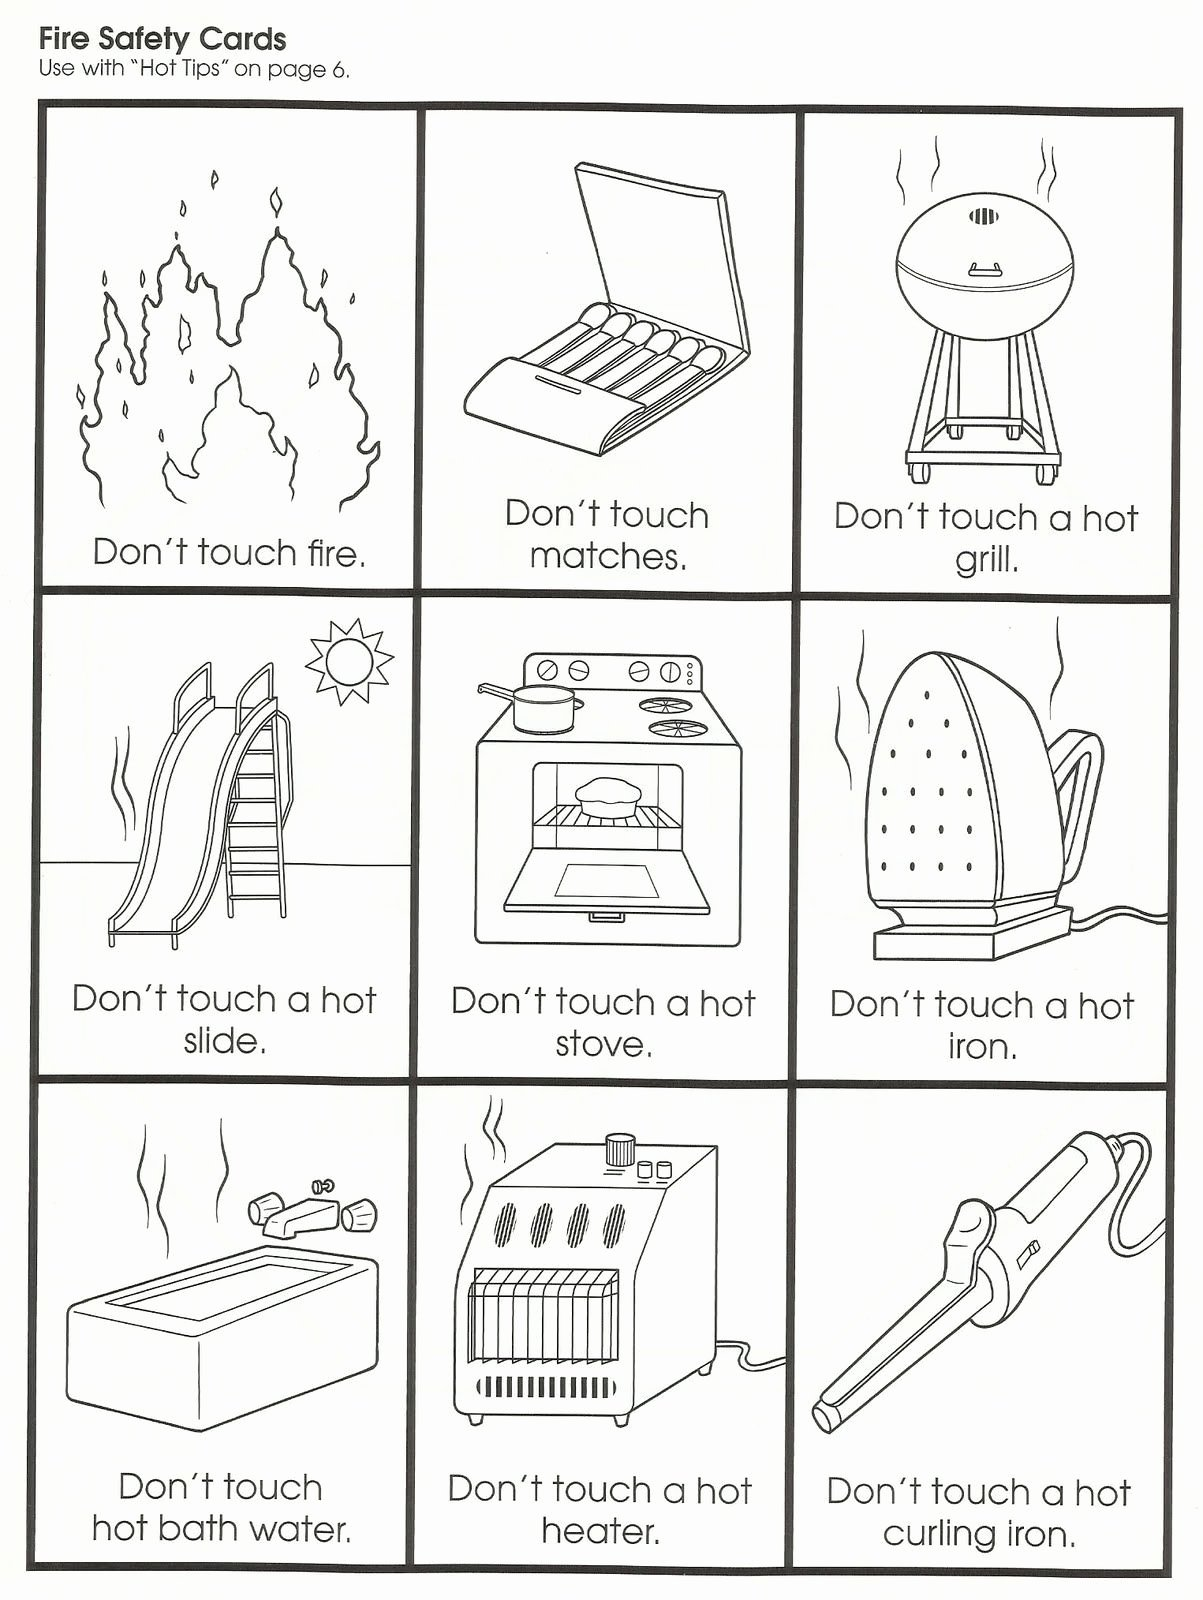 Fire Safety Worksheets for Preschoolers Inspirational Squish Preschool Ideas Fire Safety